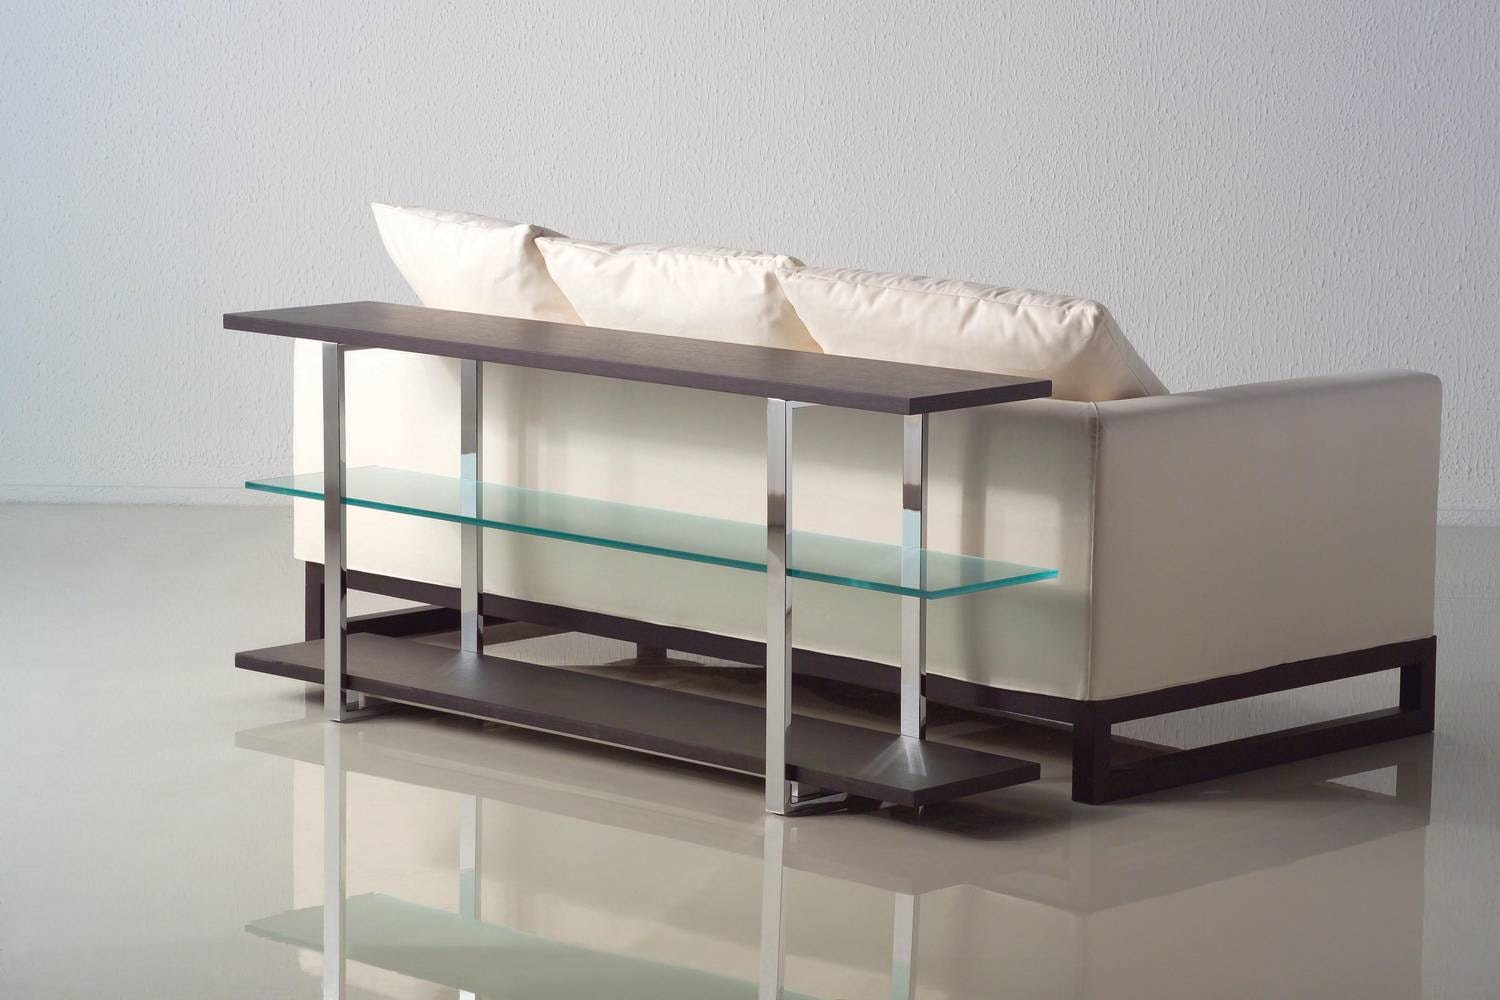 Modus Console Table by G. Azzarello for Porada